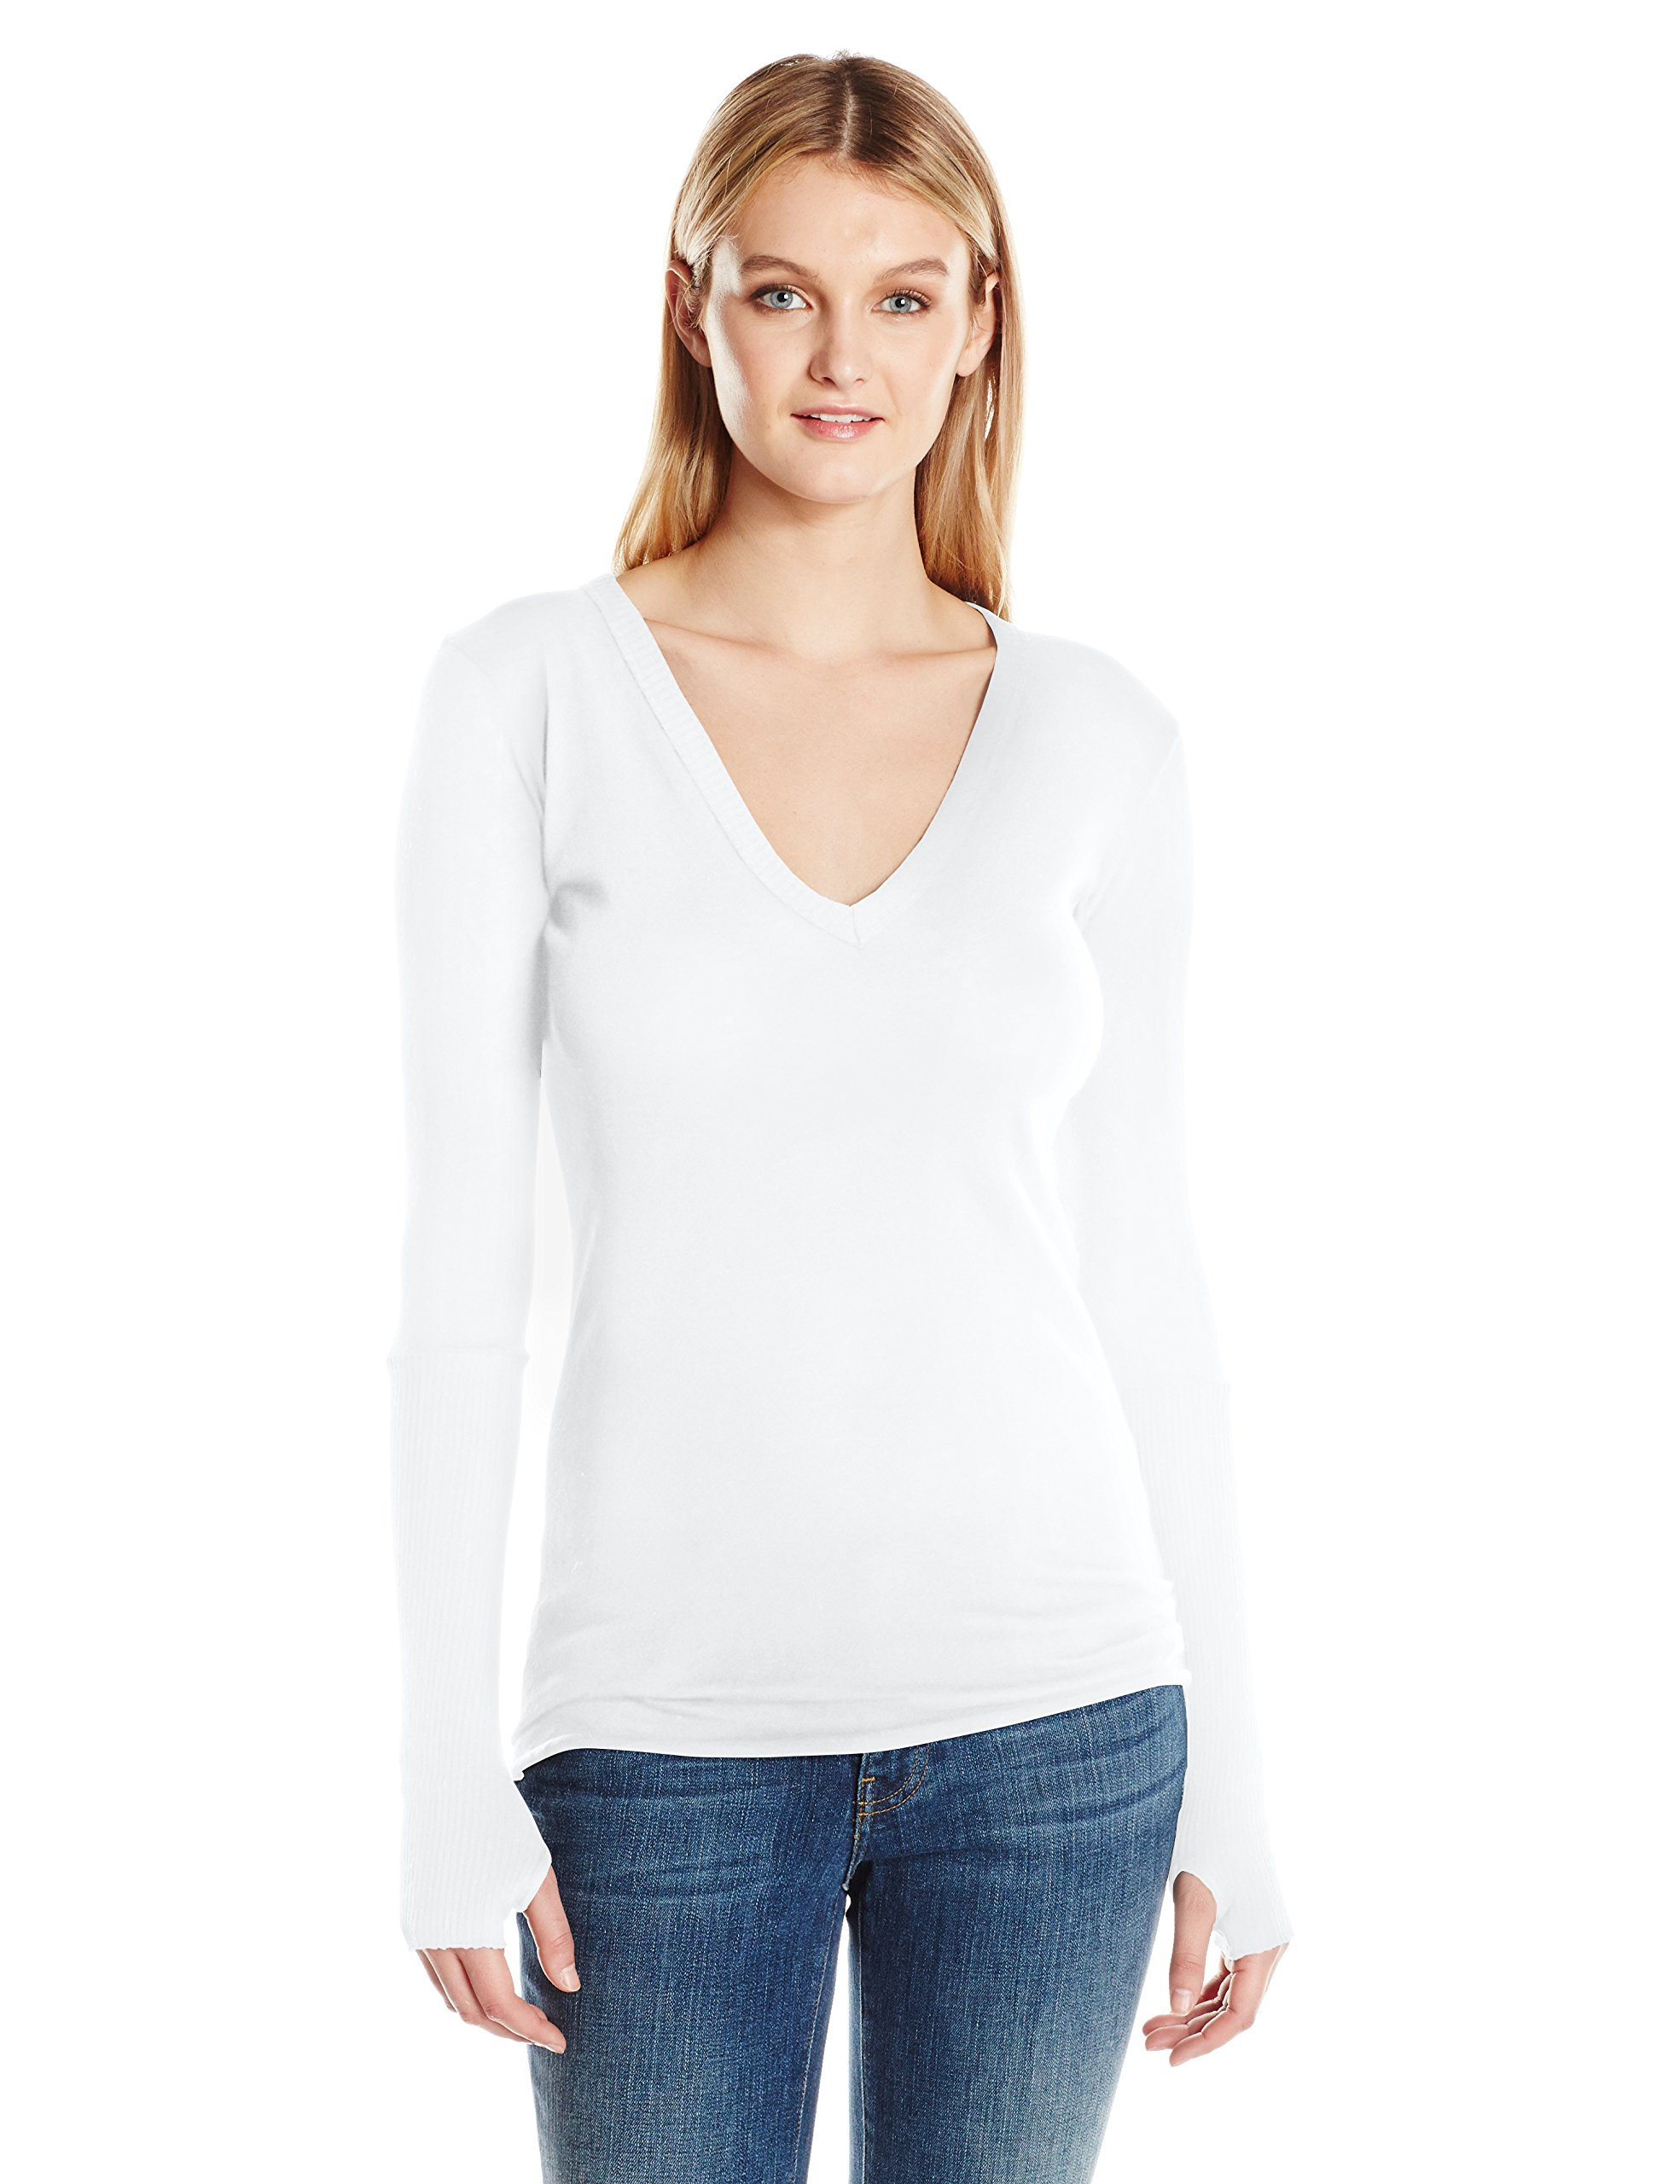 Enza Costa Women's Cashmere Long Sleeve Cuffed V-Neck with Thumbhole, White, S